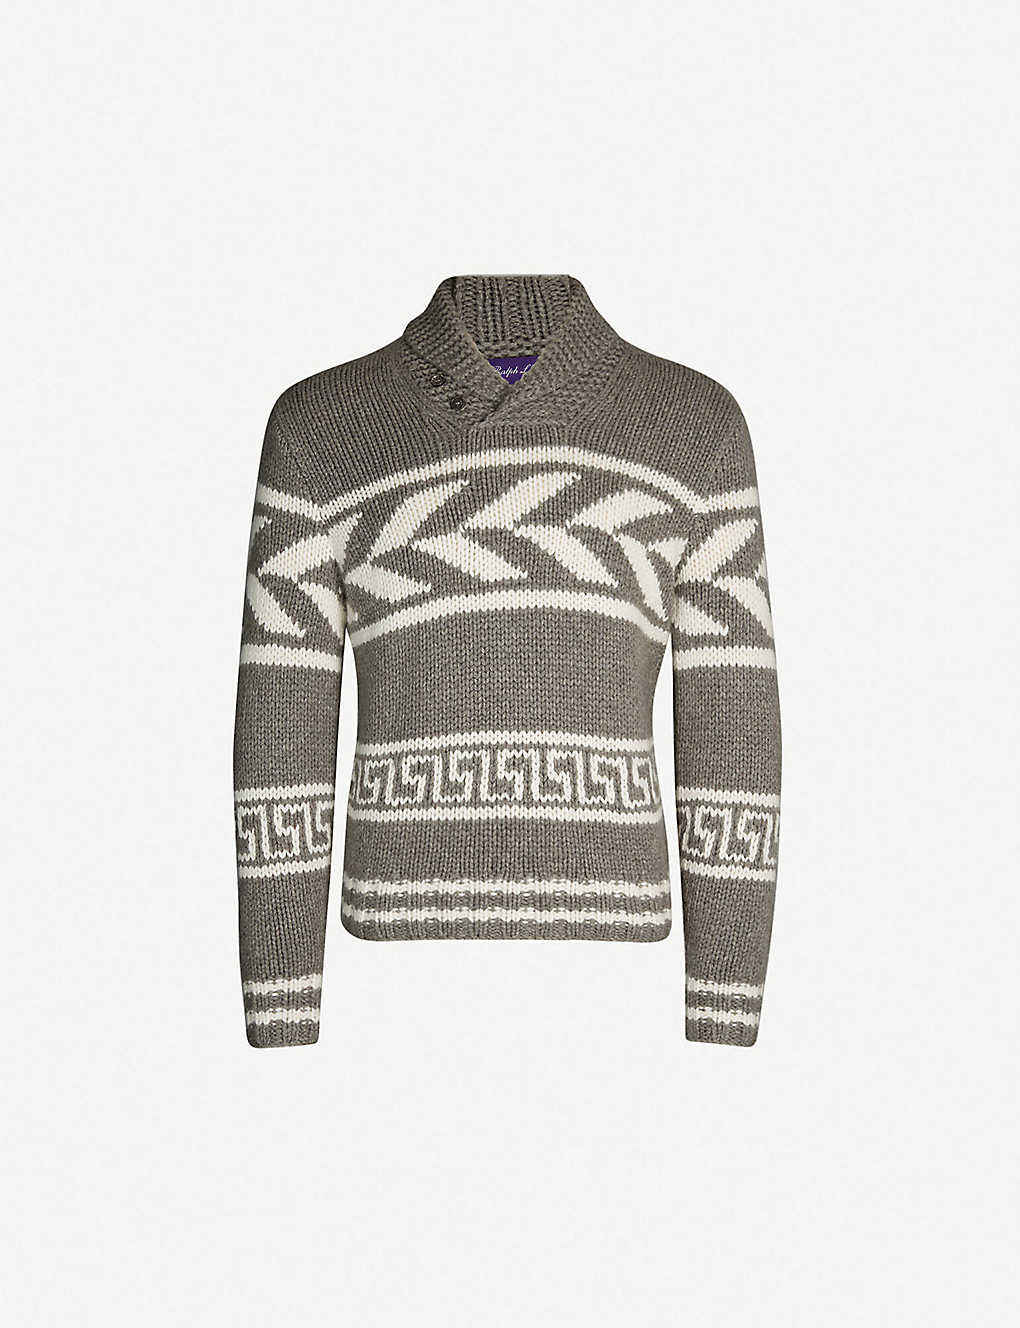 7bcf01c5a RALPH LAUREN PURPLE LABEL - Geometric-pattern cashmere jumper ...